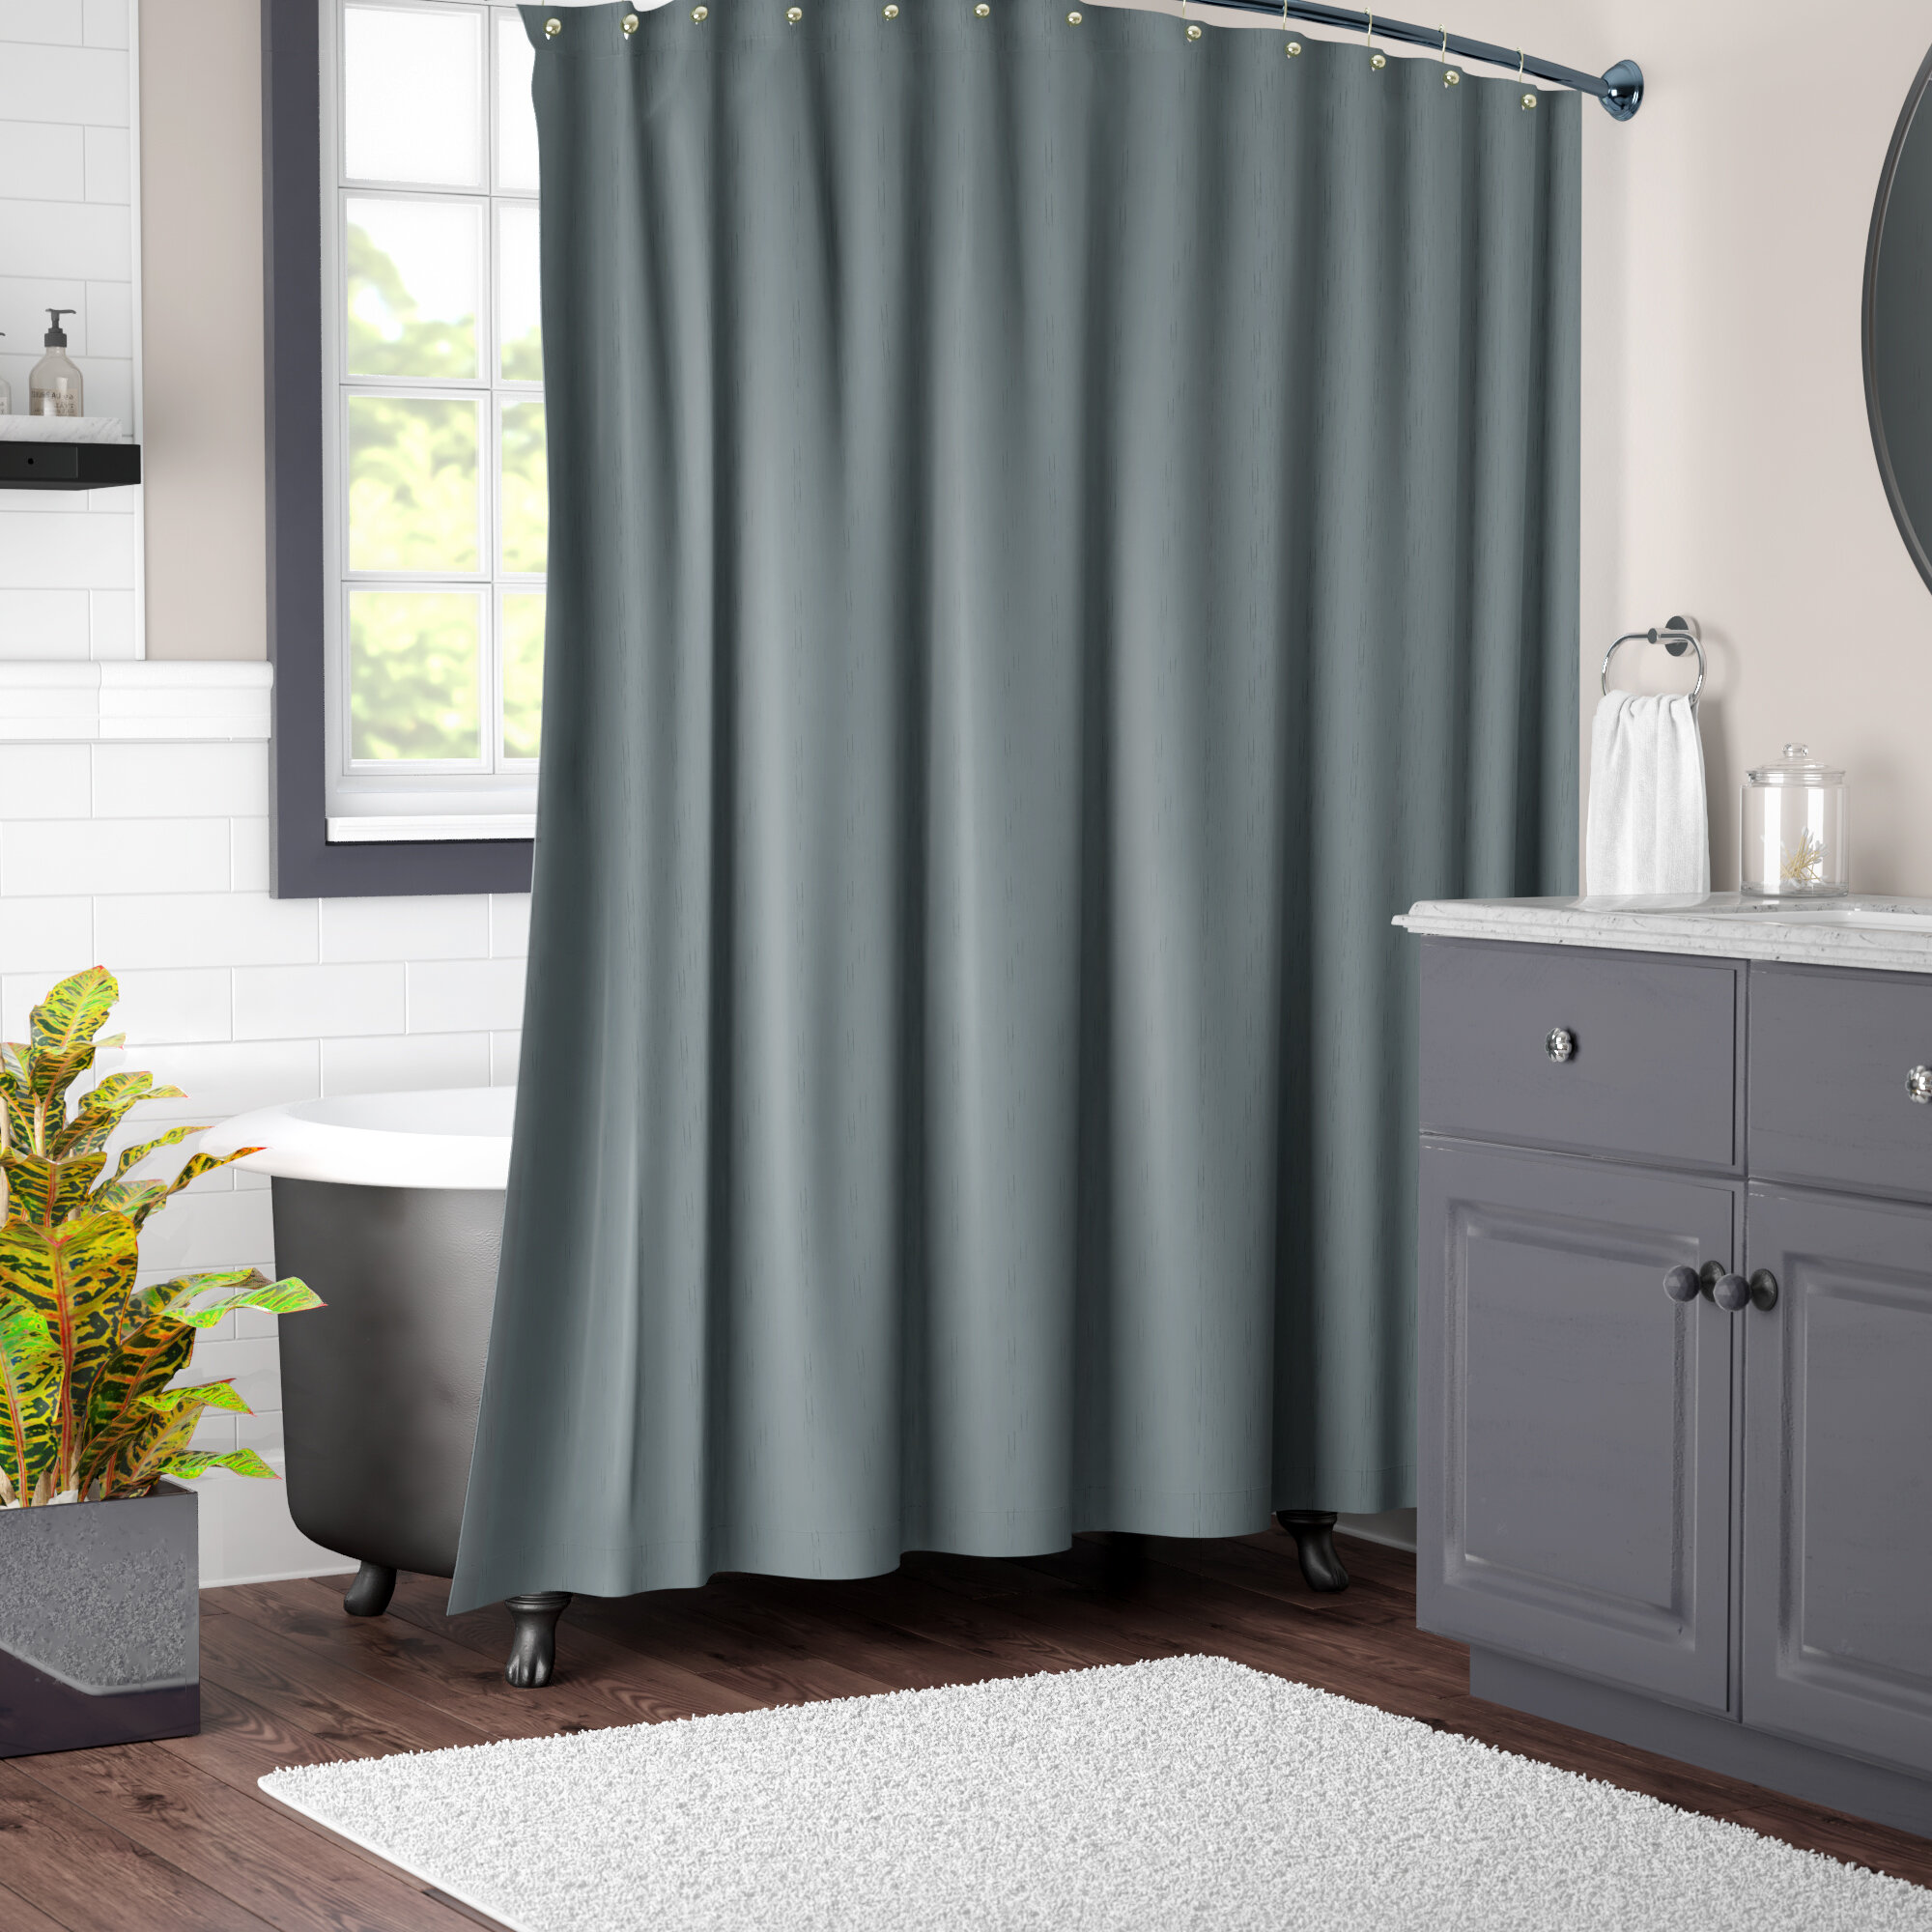 Solid Color Single Shower Curtain